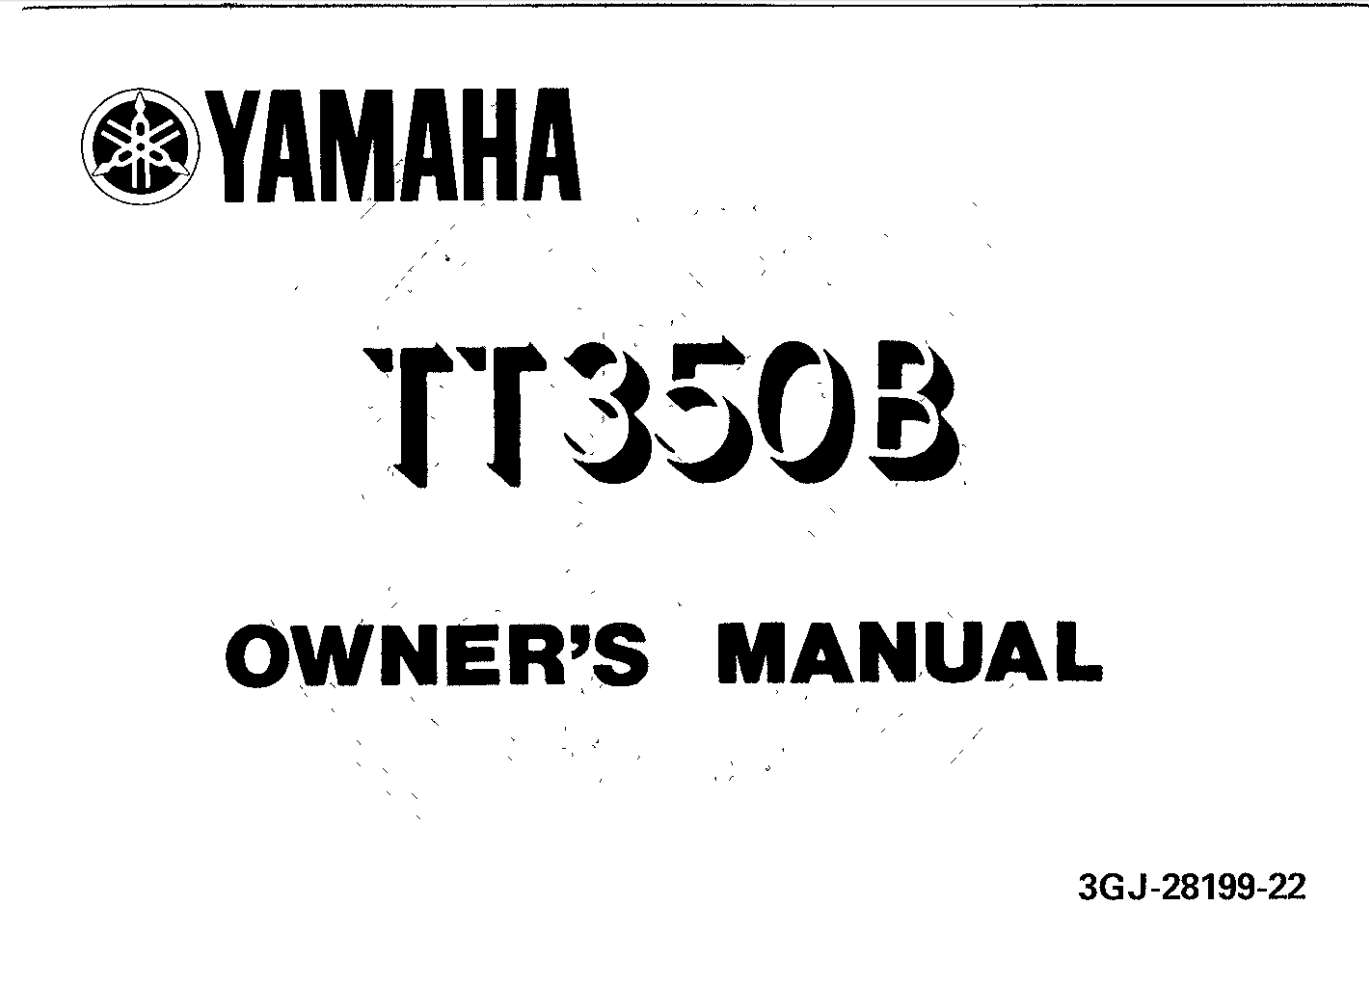 Yamaha TT350 B 1991 Owner's Manual